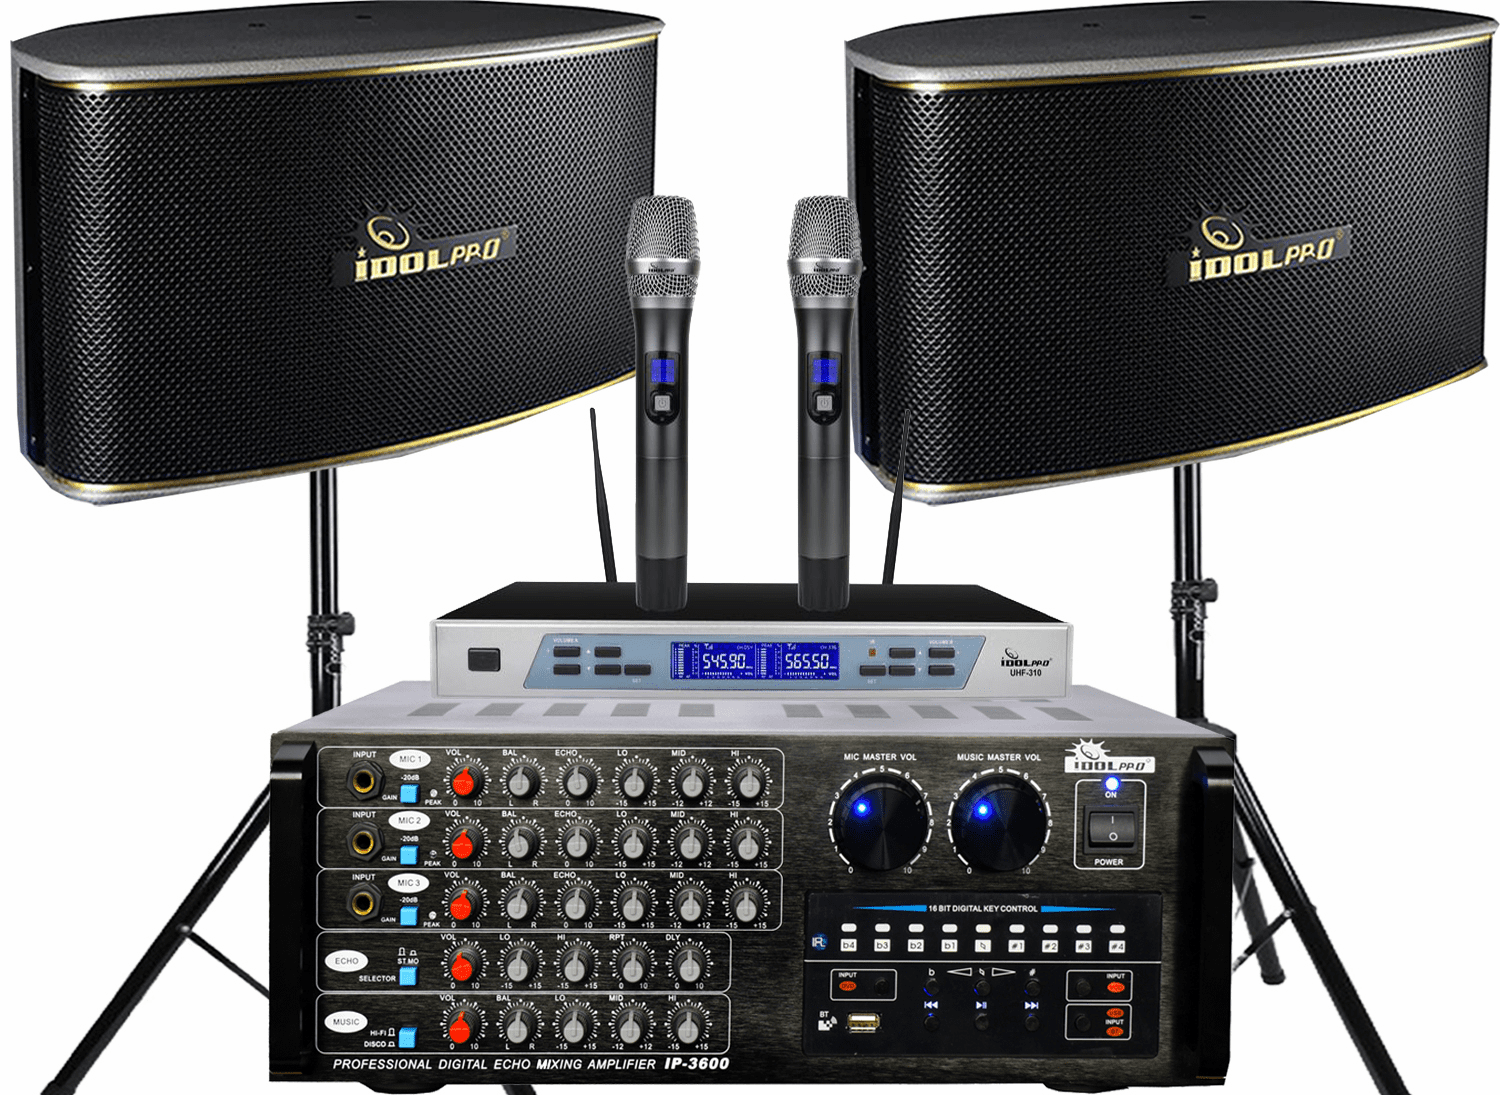 "<font color="" blue"">PACKAGE 1 </font> -- IPS-630 Speakers & IP-3600 Mixing Amplifier & UHF-310 Wireless Microphones & Stands"